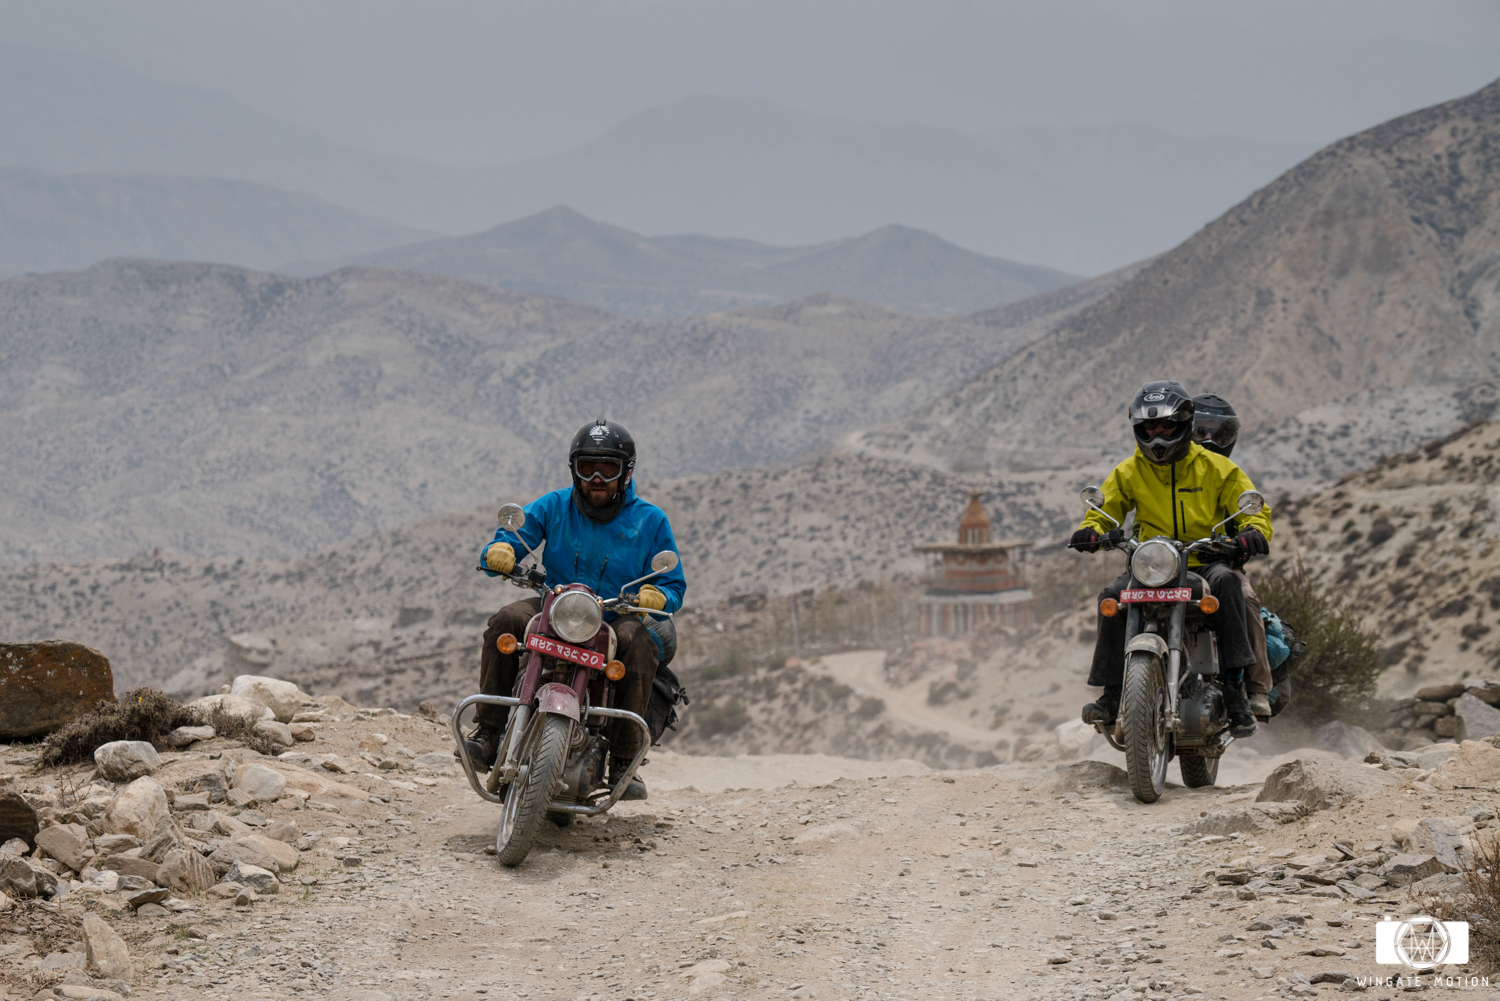 The roads to Mustang were incredibly challenging on these 1950's era Royal Enfield motorcycles. With no real suspension and no planned itinerary, we set our sights on the Tibetan border with high hopes that our bikes would make it all the way. We would face disappointment and redemption along the way. Photo: Cody Tuttle